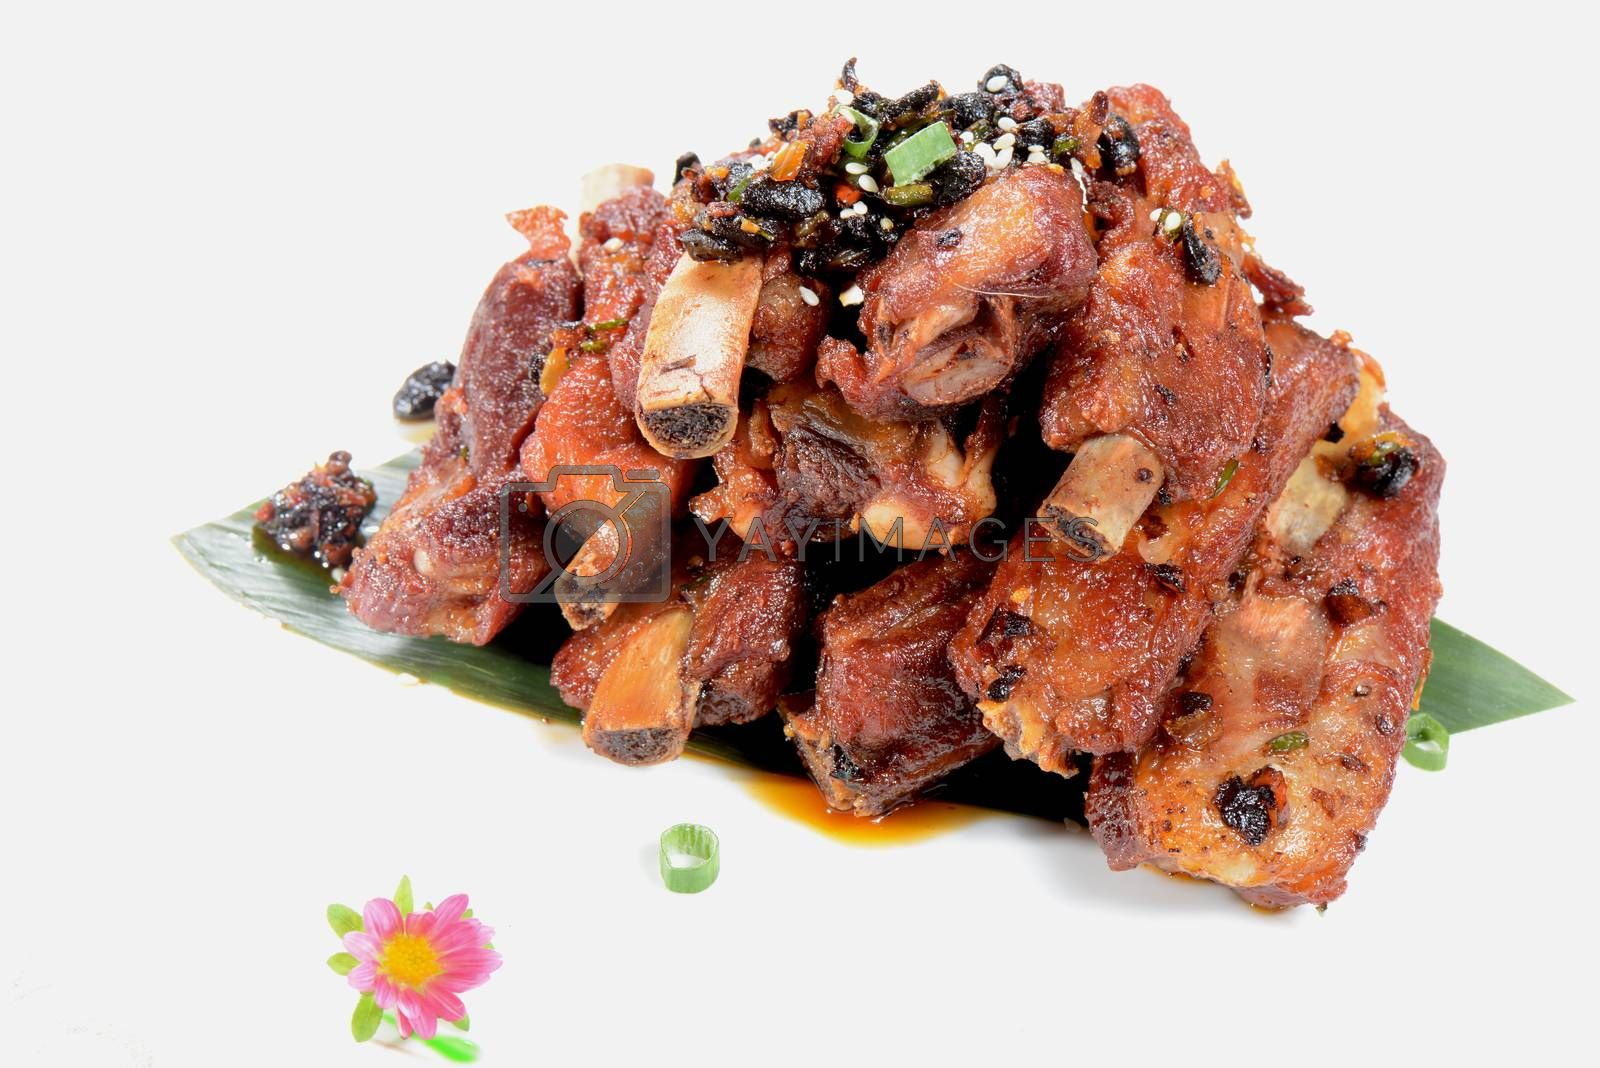 Royalty free image of Chinese Food: Fried pork steak by bbbar